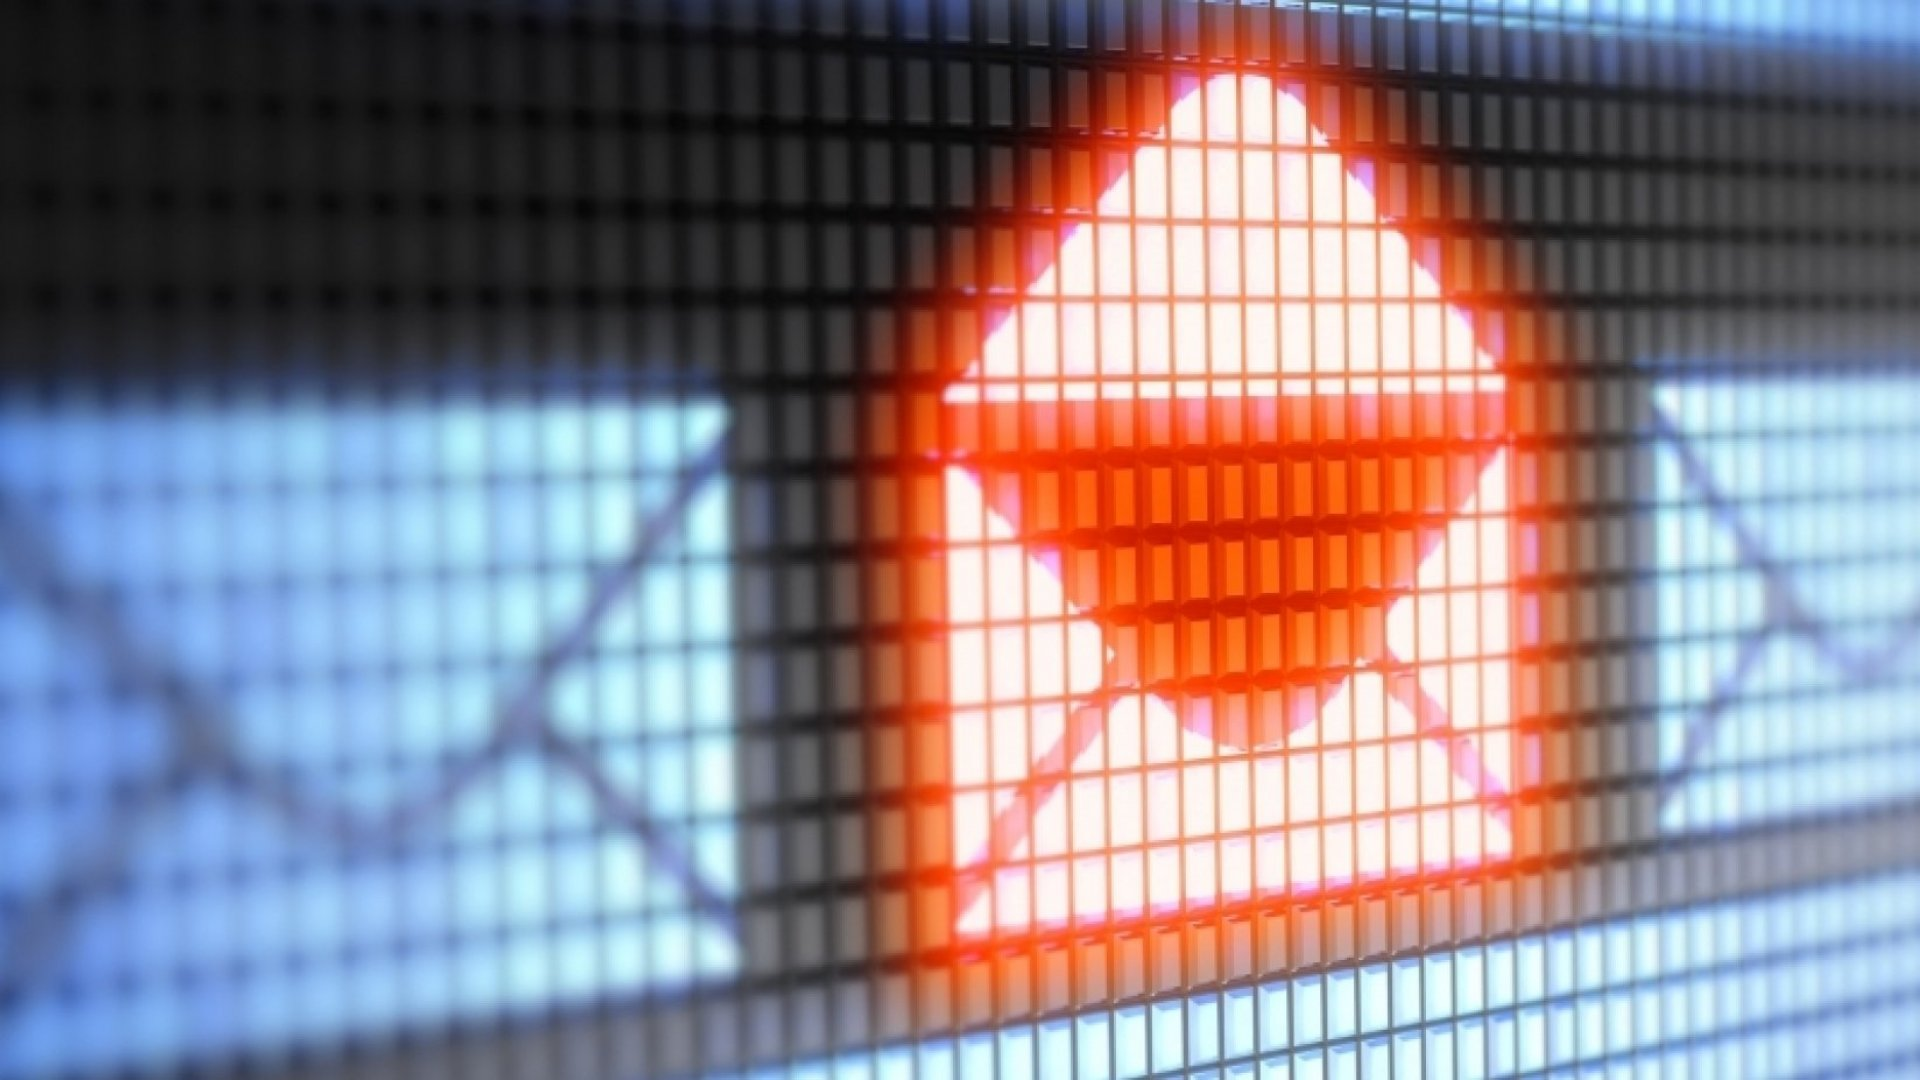 5 Reasons This Startup Doesn't Want Your Email Address